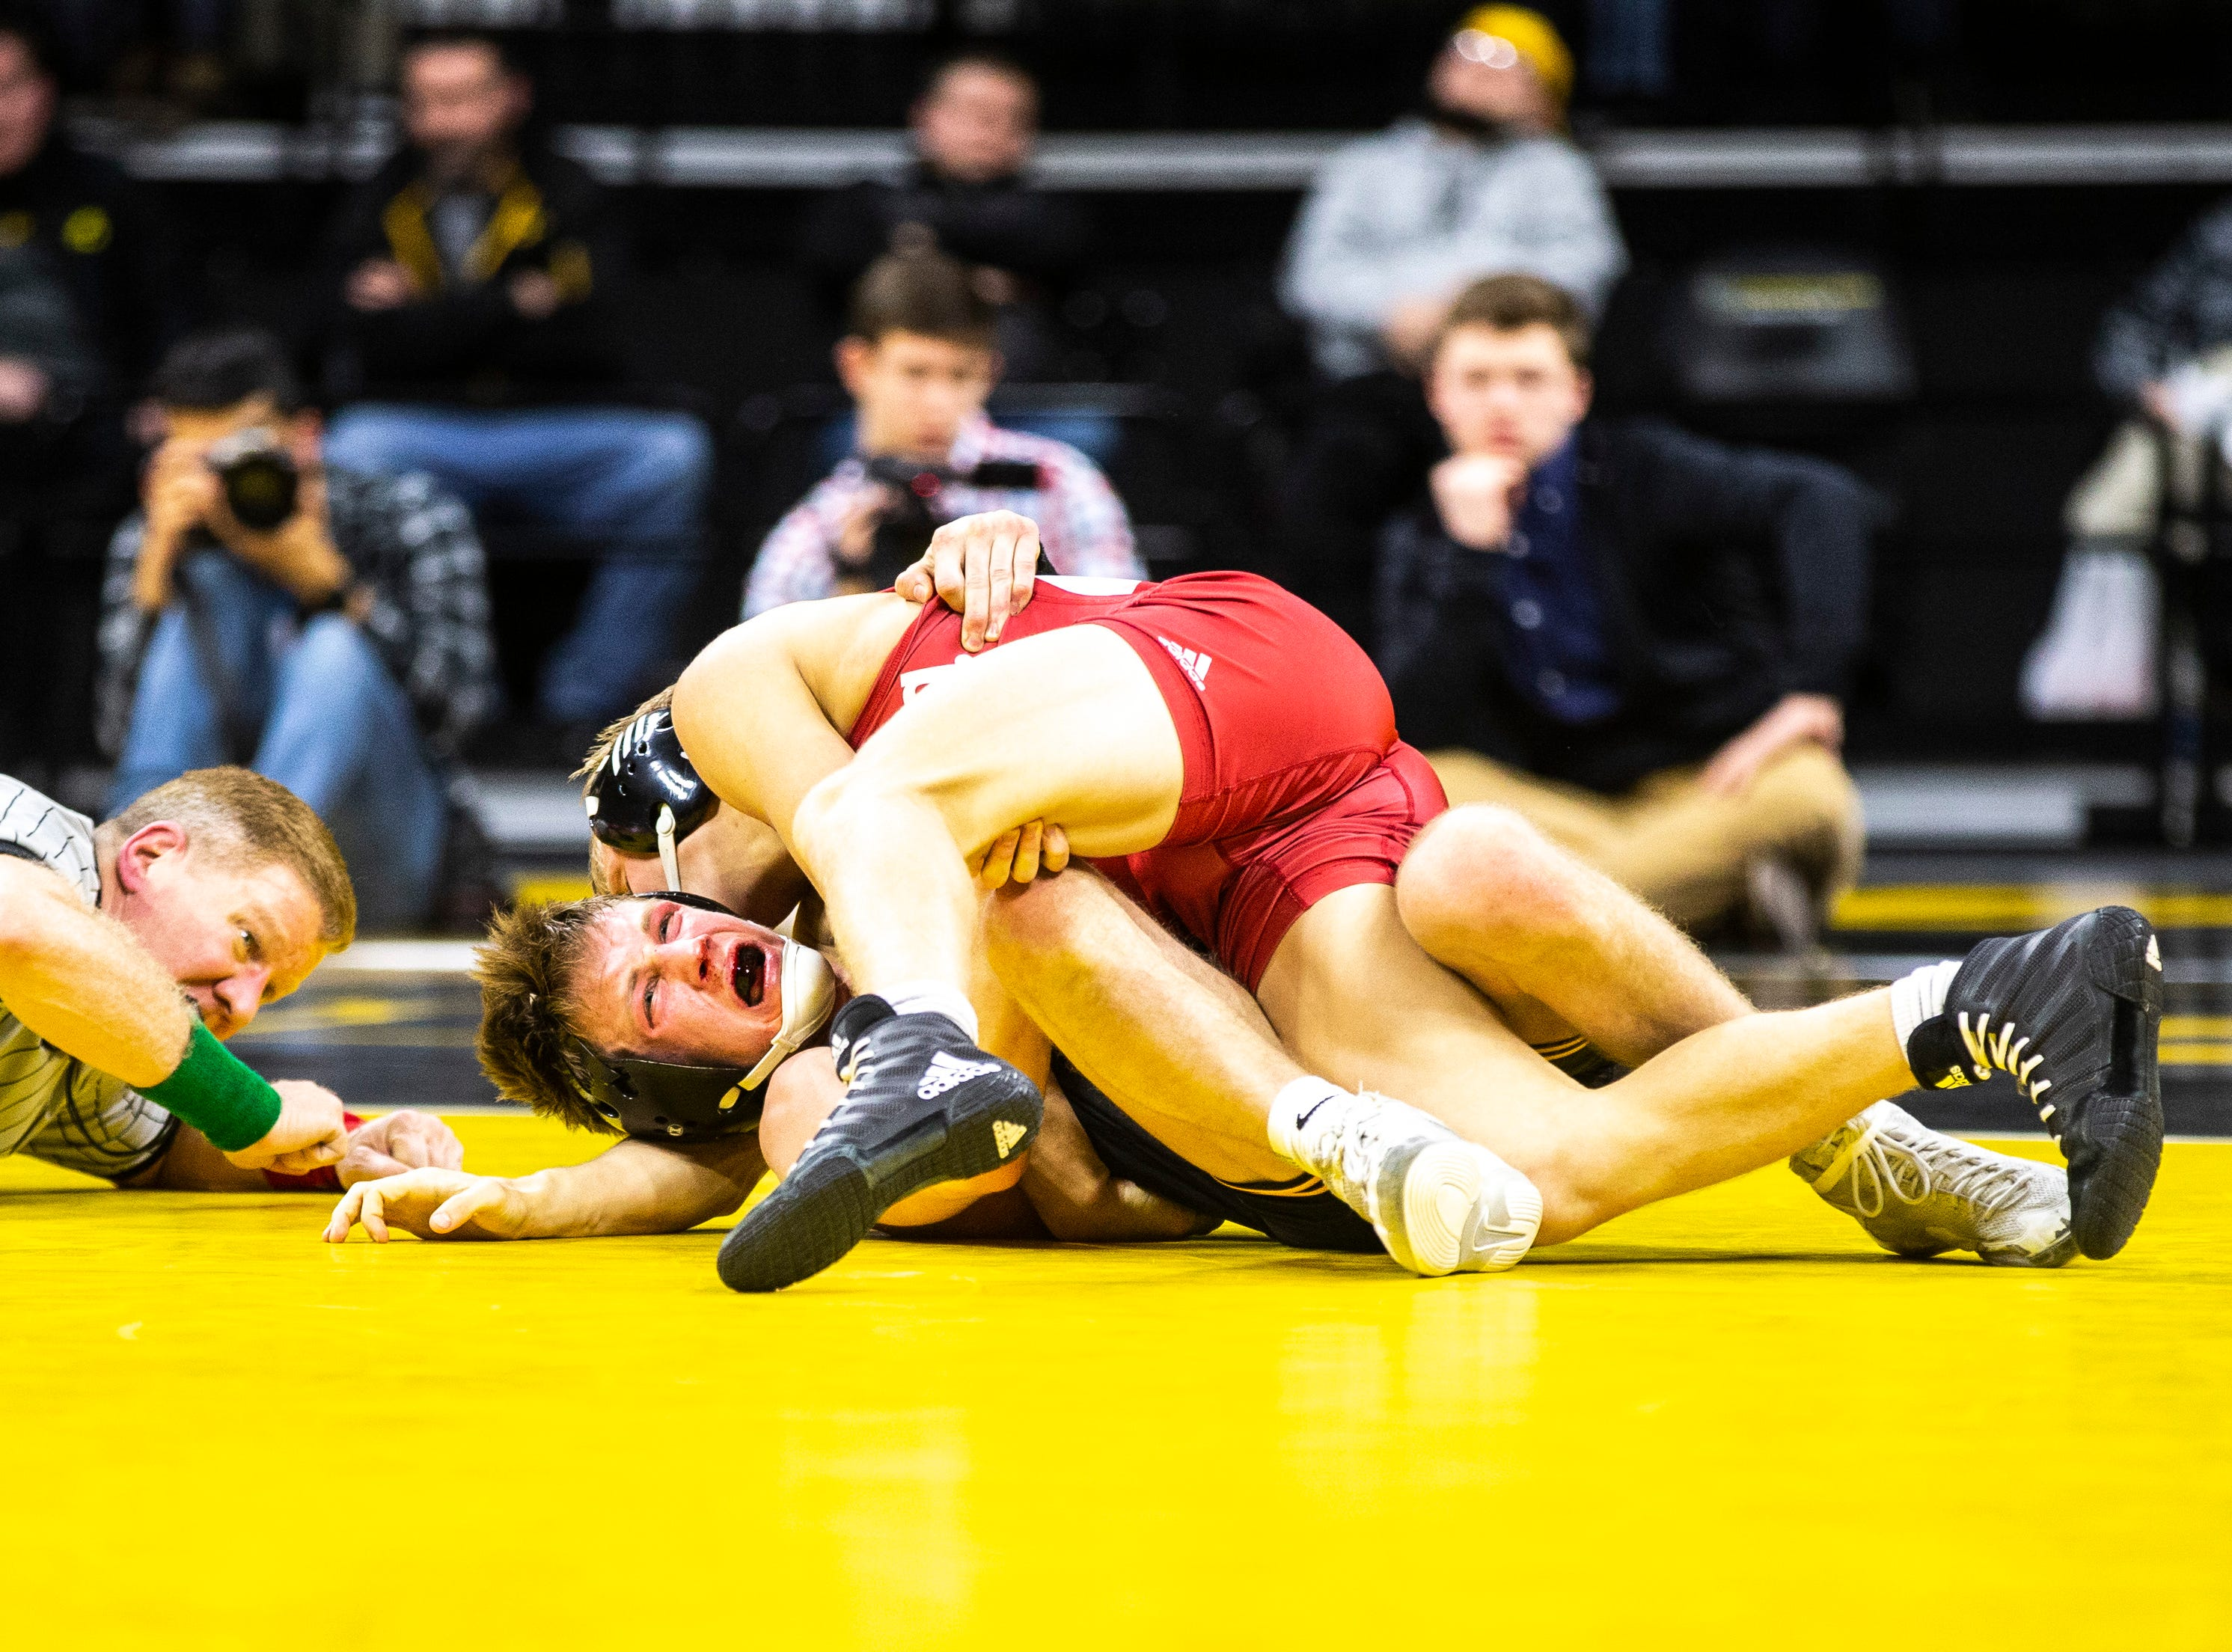 Indiana's Kyle Luigs pins Iowa's Max Murin at 141 during a NCAA Big Ten Conference wrestling dual on Friday, Feb. 15, 2019 at Carver-Hawkeye Arena in Iowa City, Iowa.